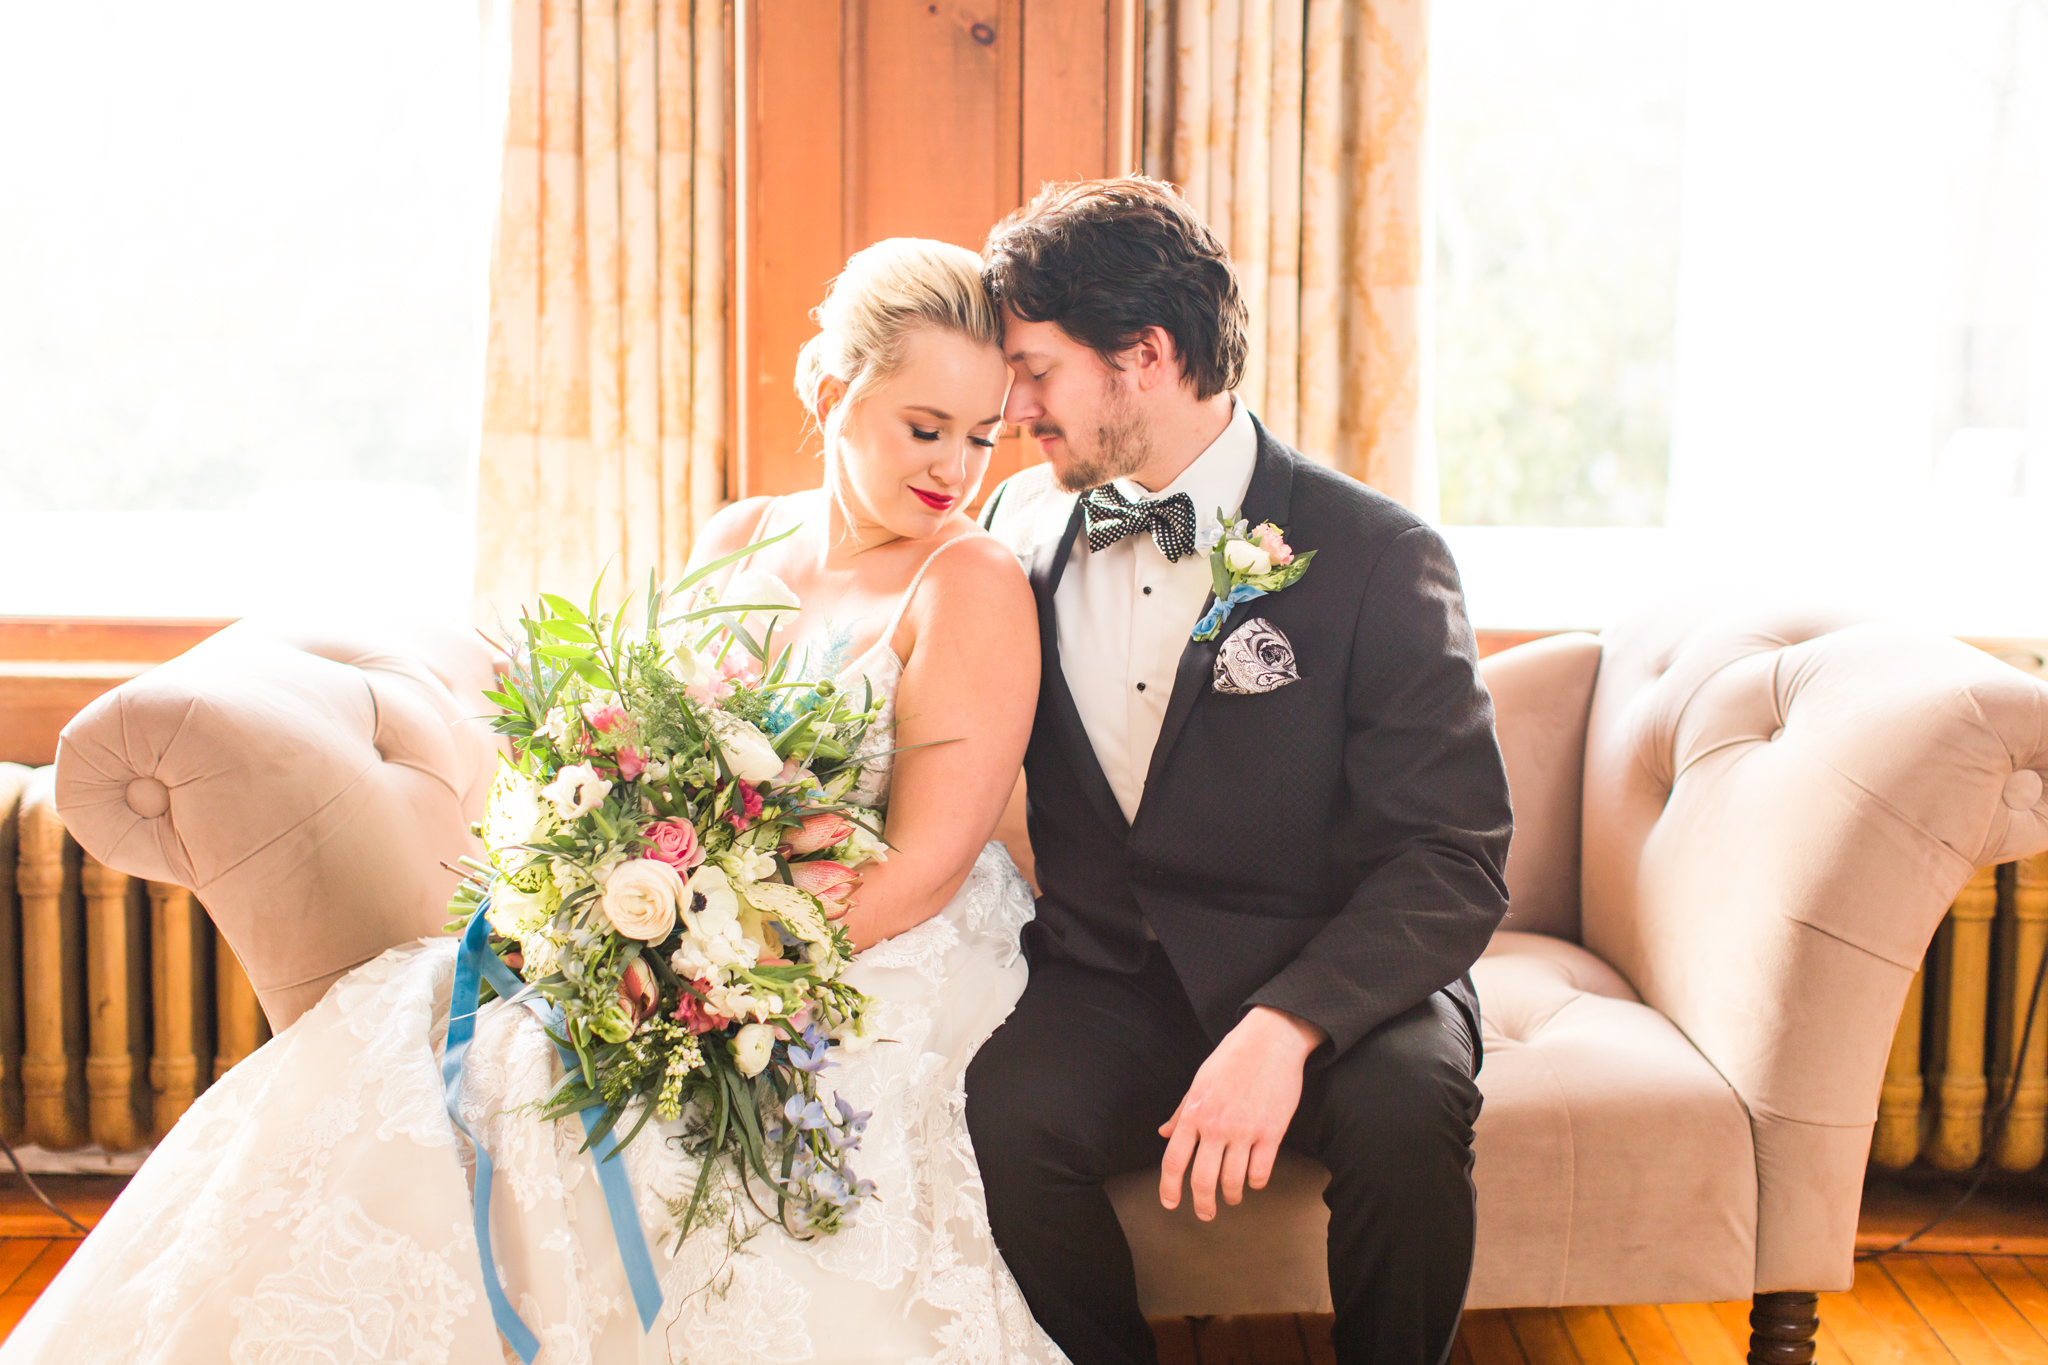 Haley Mansion Winter Wedding - Shaina Lee Photography-278.jpg